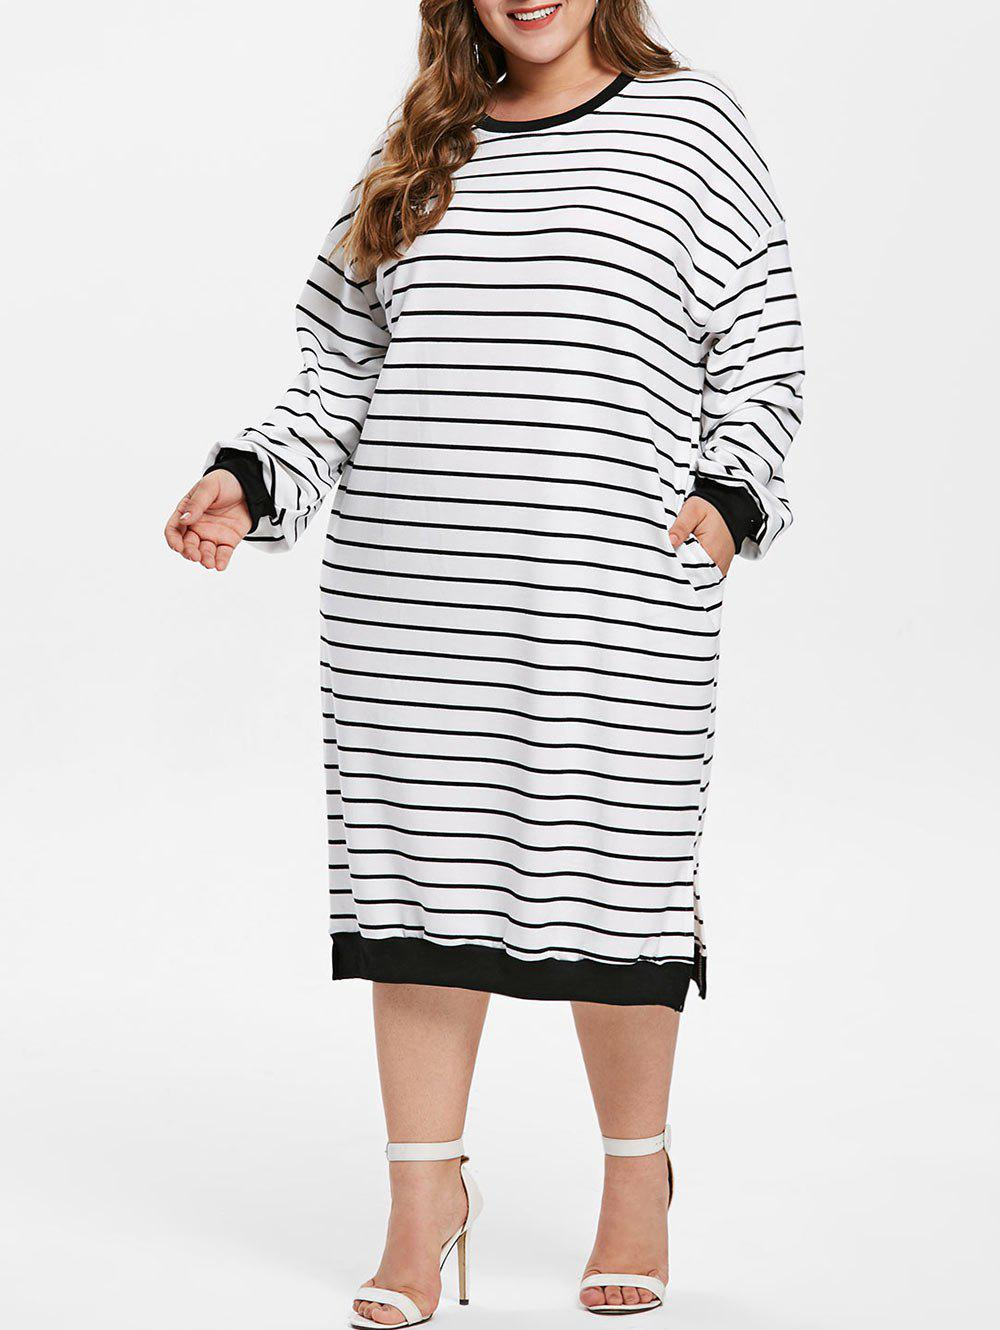 Affordable Drop Shoulder Plus Size Striped T-shirt Dress